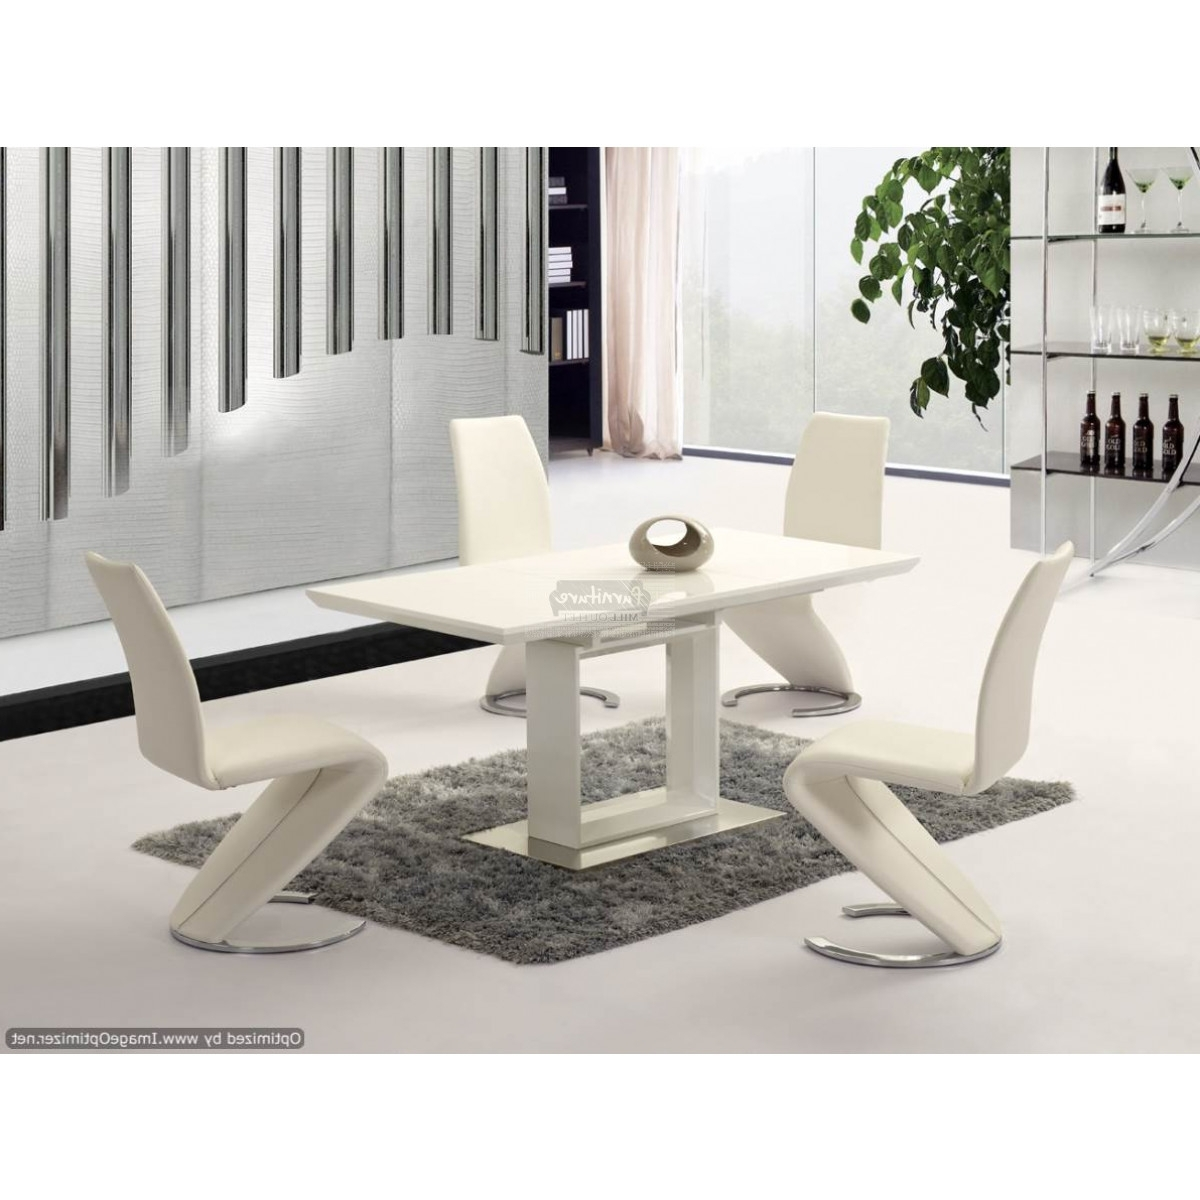 Best And Newest Space White High Gloss Extending Dining Table – 120Cm To 160Cm Throughout High Gloss Dining Tables (Gallery 22 of 25)